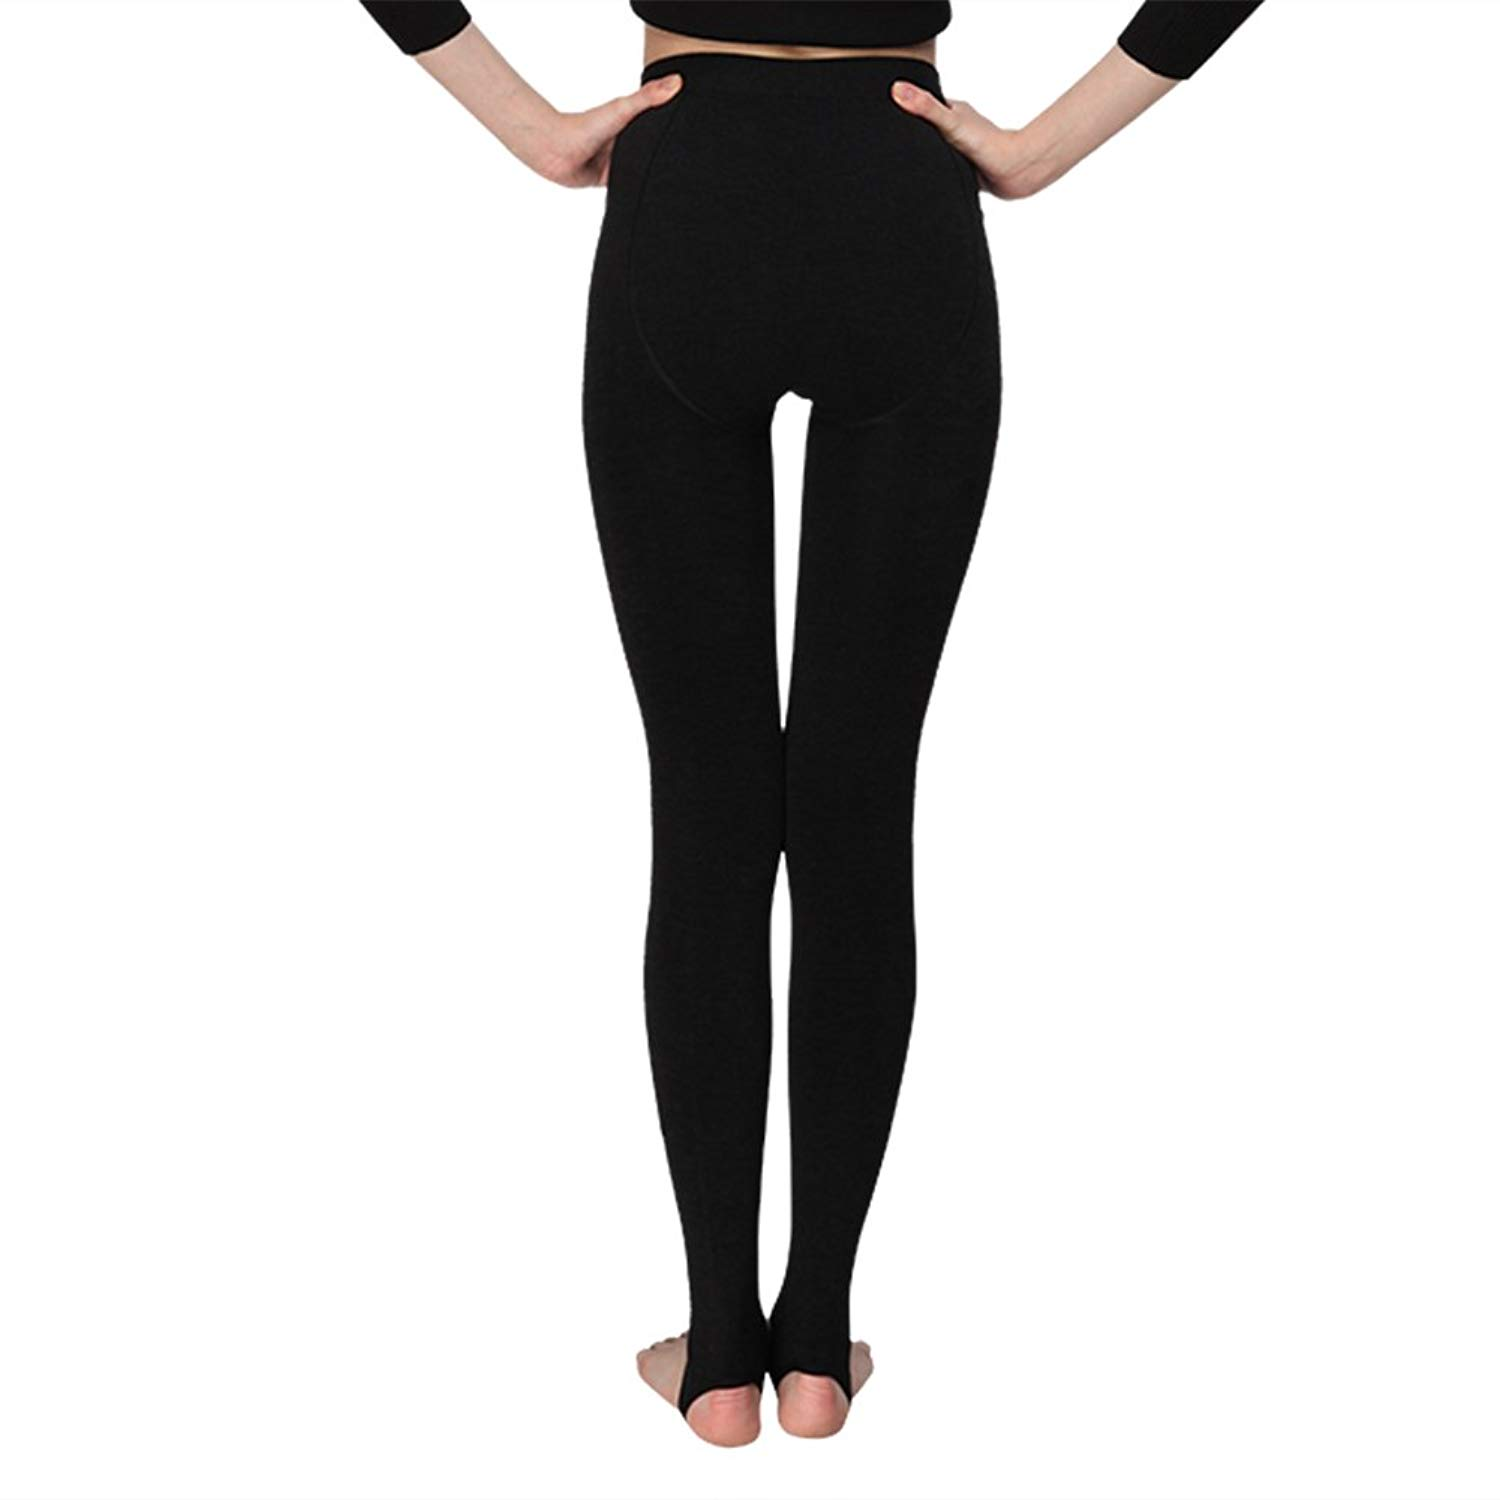 5b08986321e858 Get Quotations · INCHER Fleece Leggings, Stirrup Leggings,Warm Fleece Lined  Tights Thermal Winter Pantyhose Tights